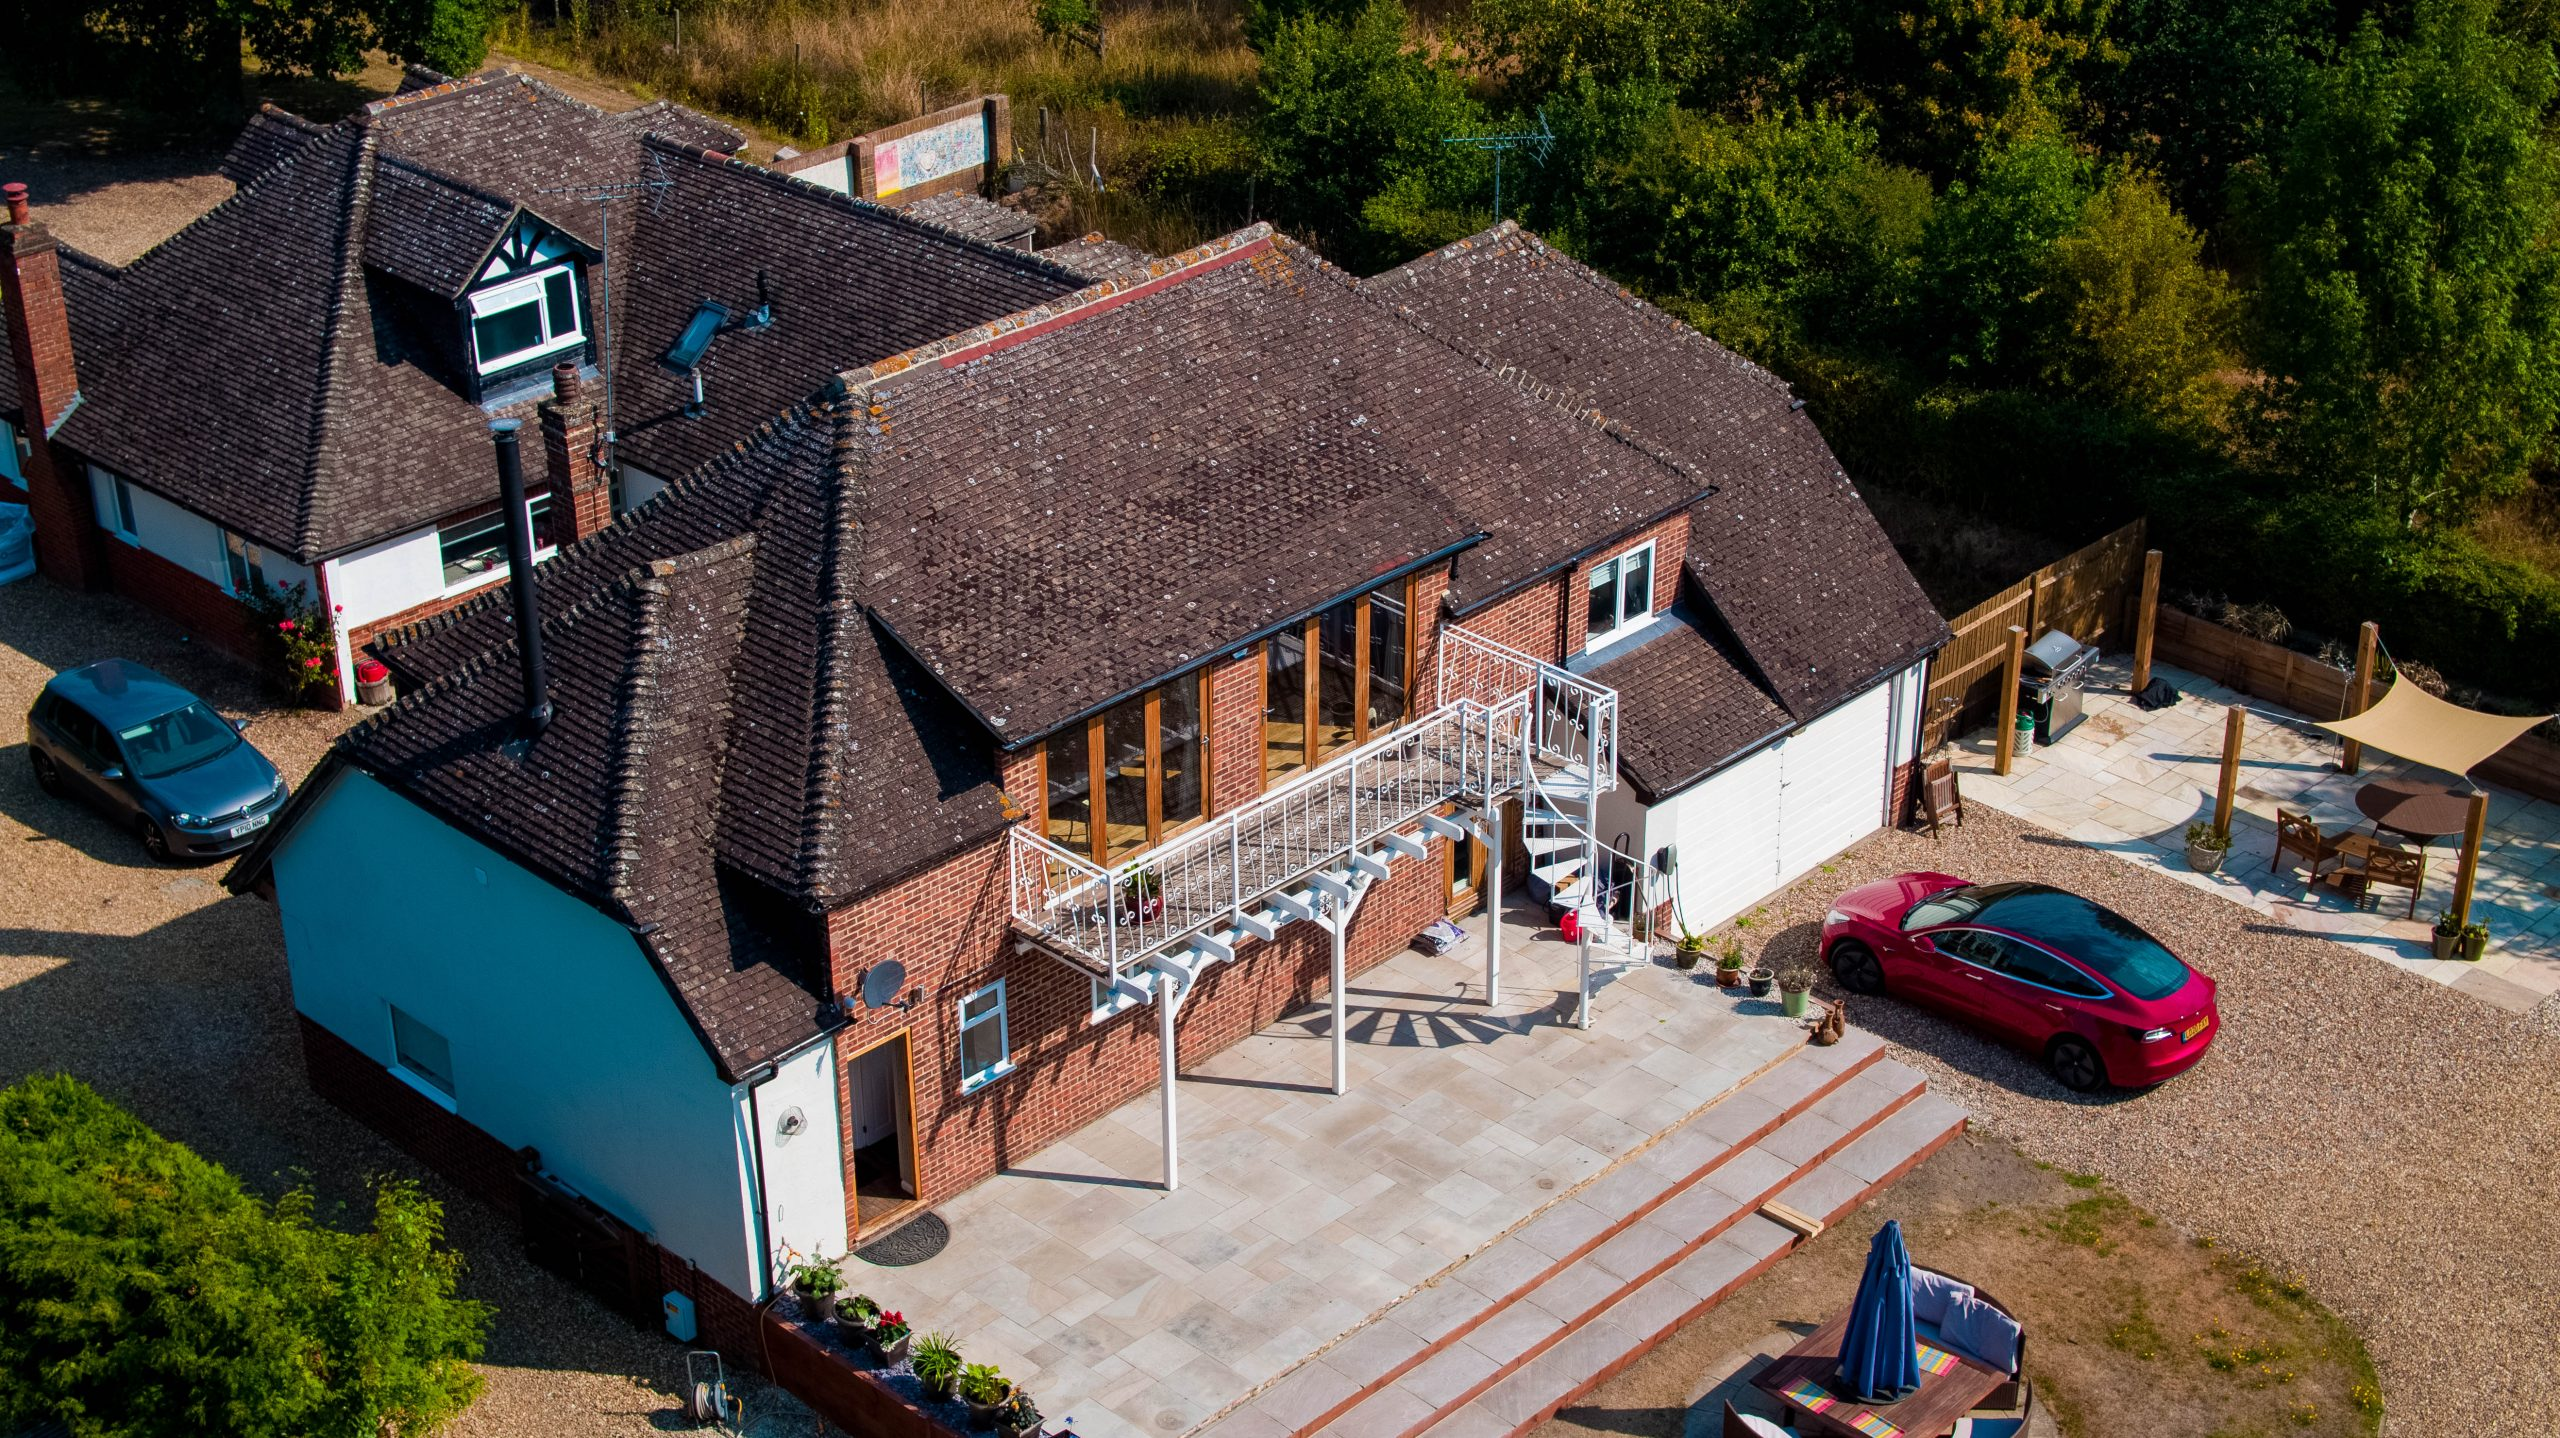 Aerial photography of country house, Eversely, Hampshire.